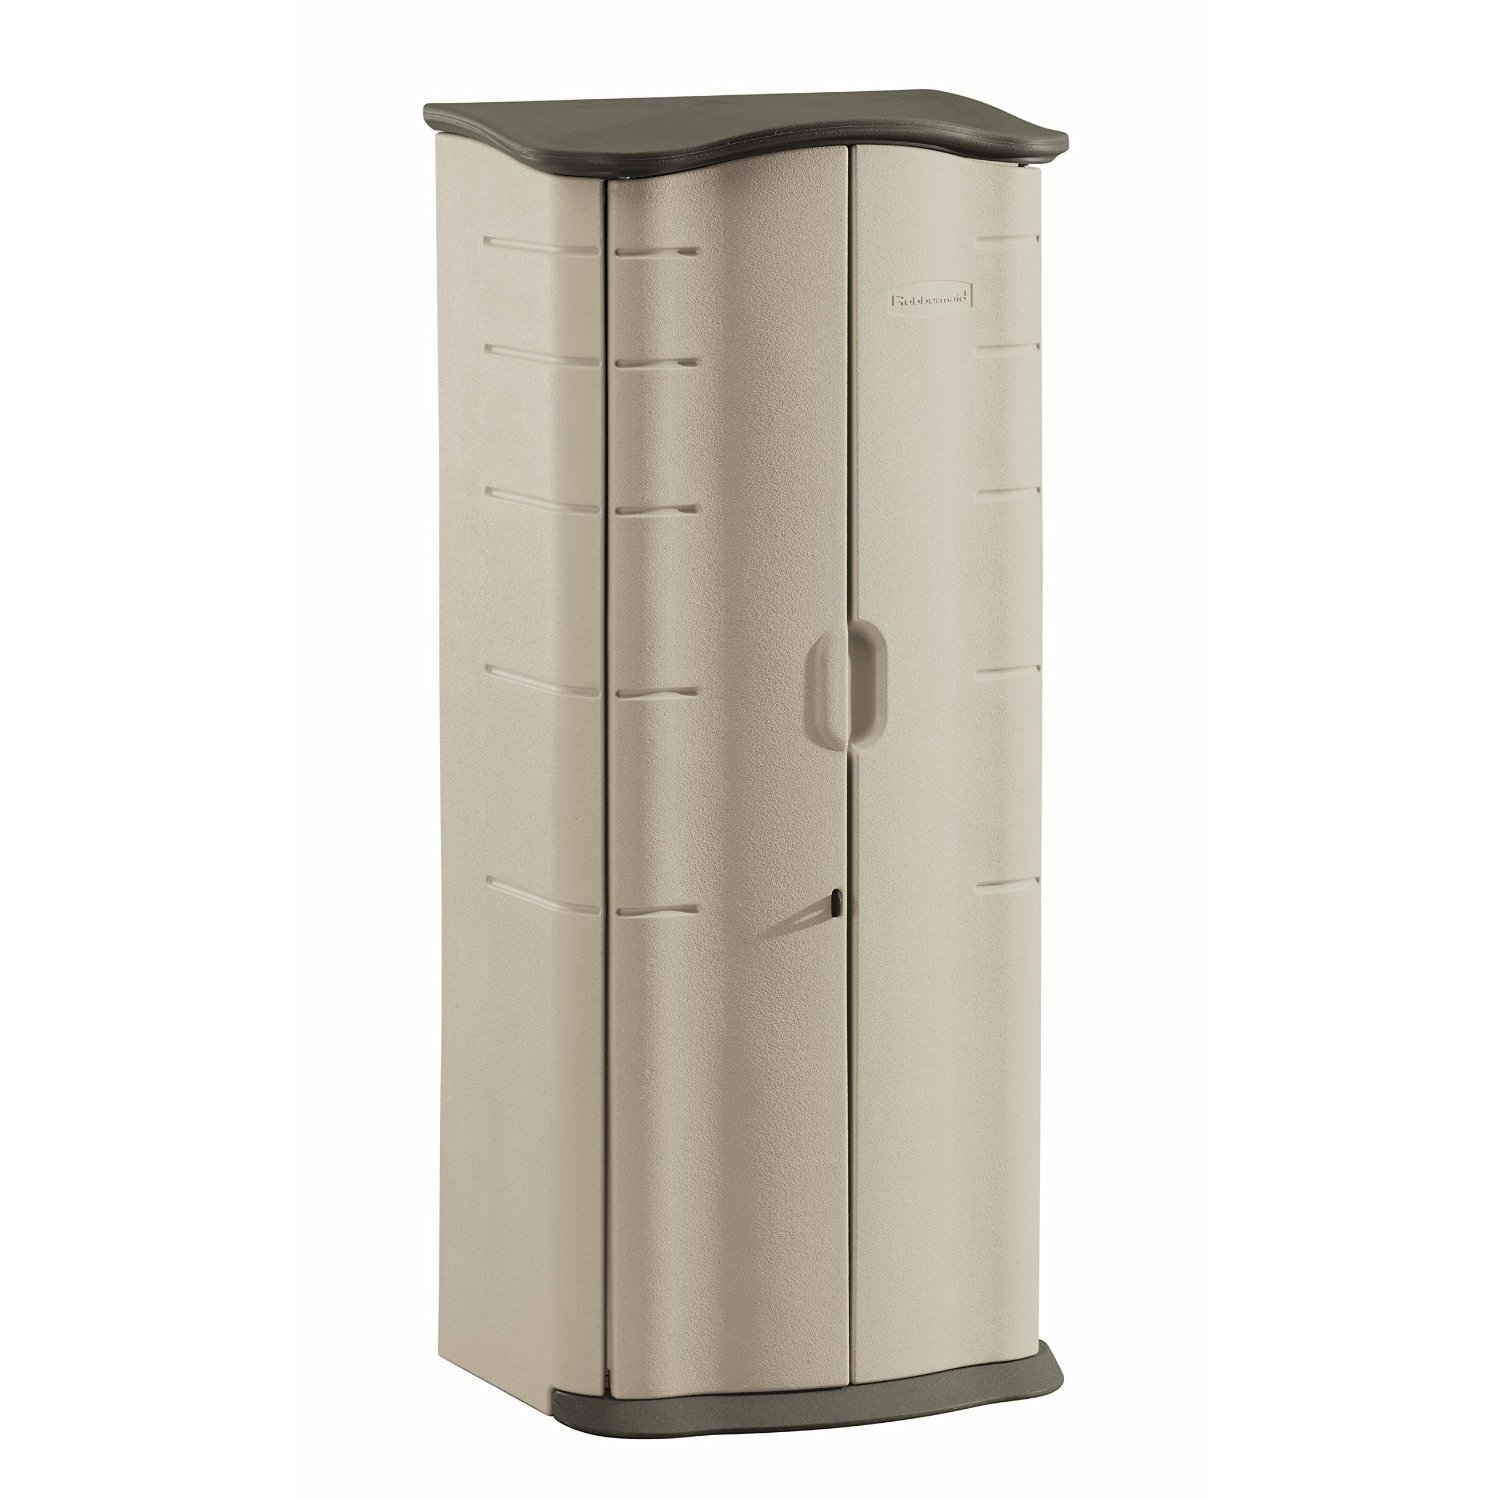 Amazon.com : Rubbermaid Outdoor Vertical Storage Shed, Plastic, 17 Cu. Ft.,  2 Ft. X 2 Ft., Olive/Sandstone (FG374901OLVSS) : Storage Cabinet : Garden U0026  ...